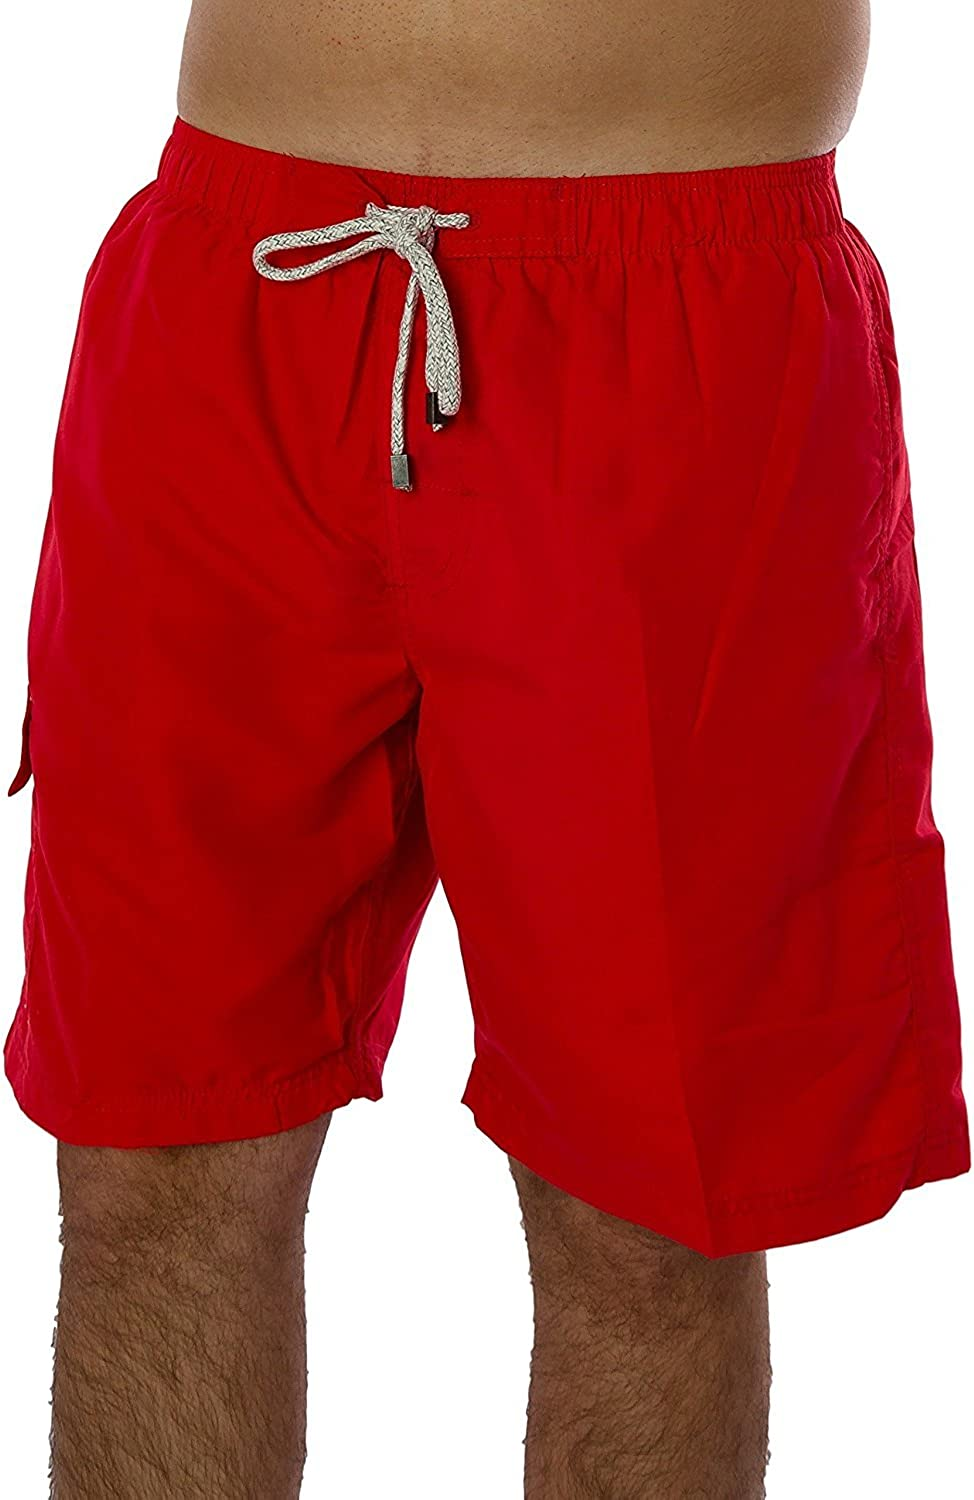 Details about  /Speedo Men/'s swimsuit Fit Aqua shorts with Passe Freshwater oxide Gray Blac